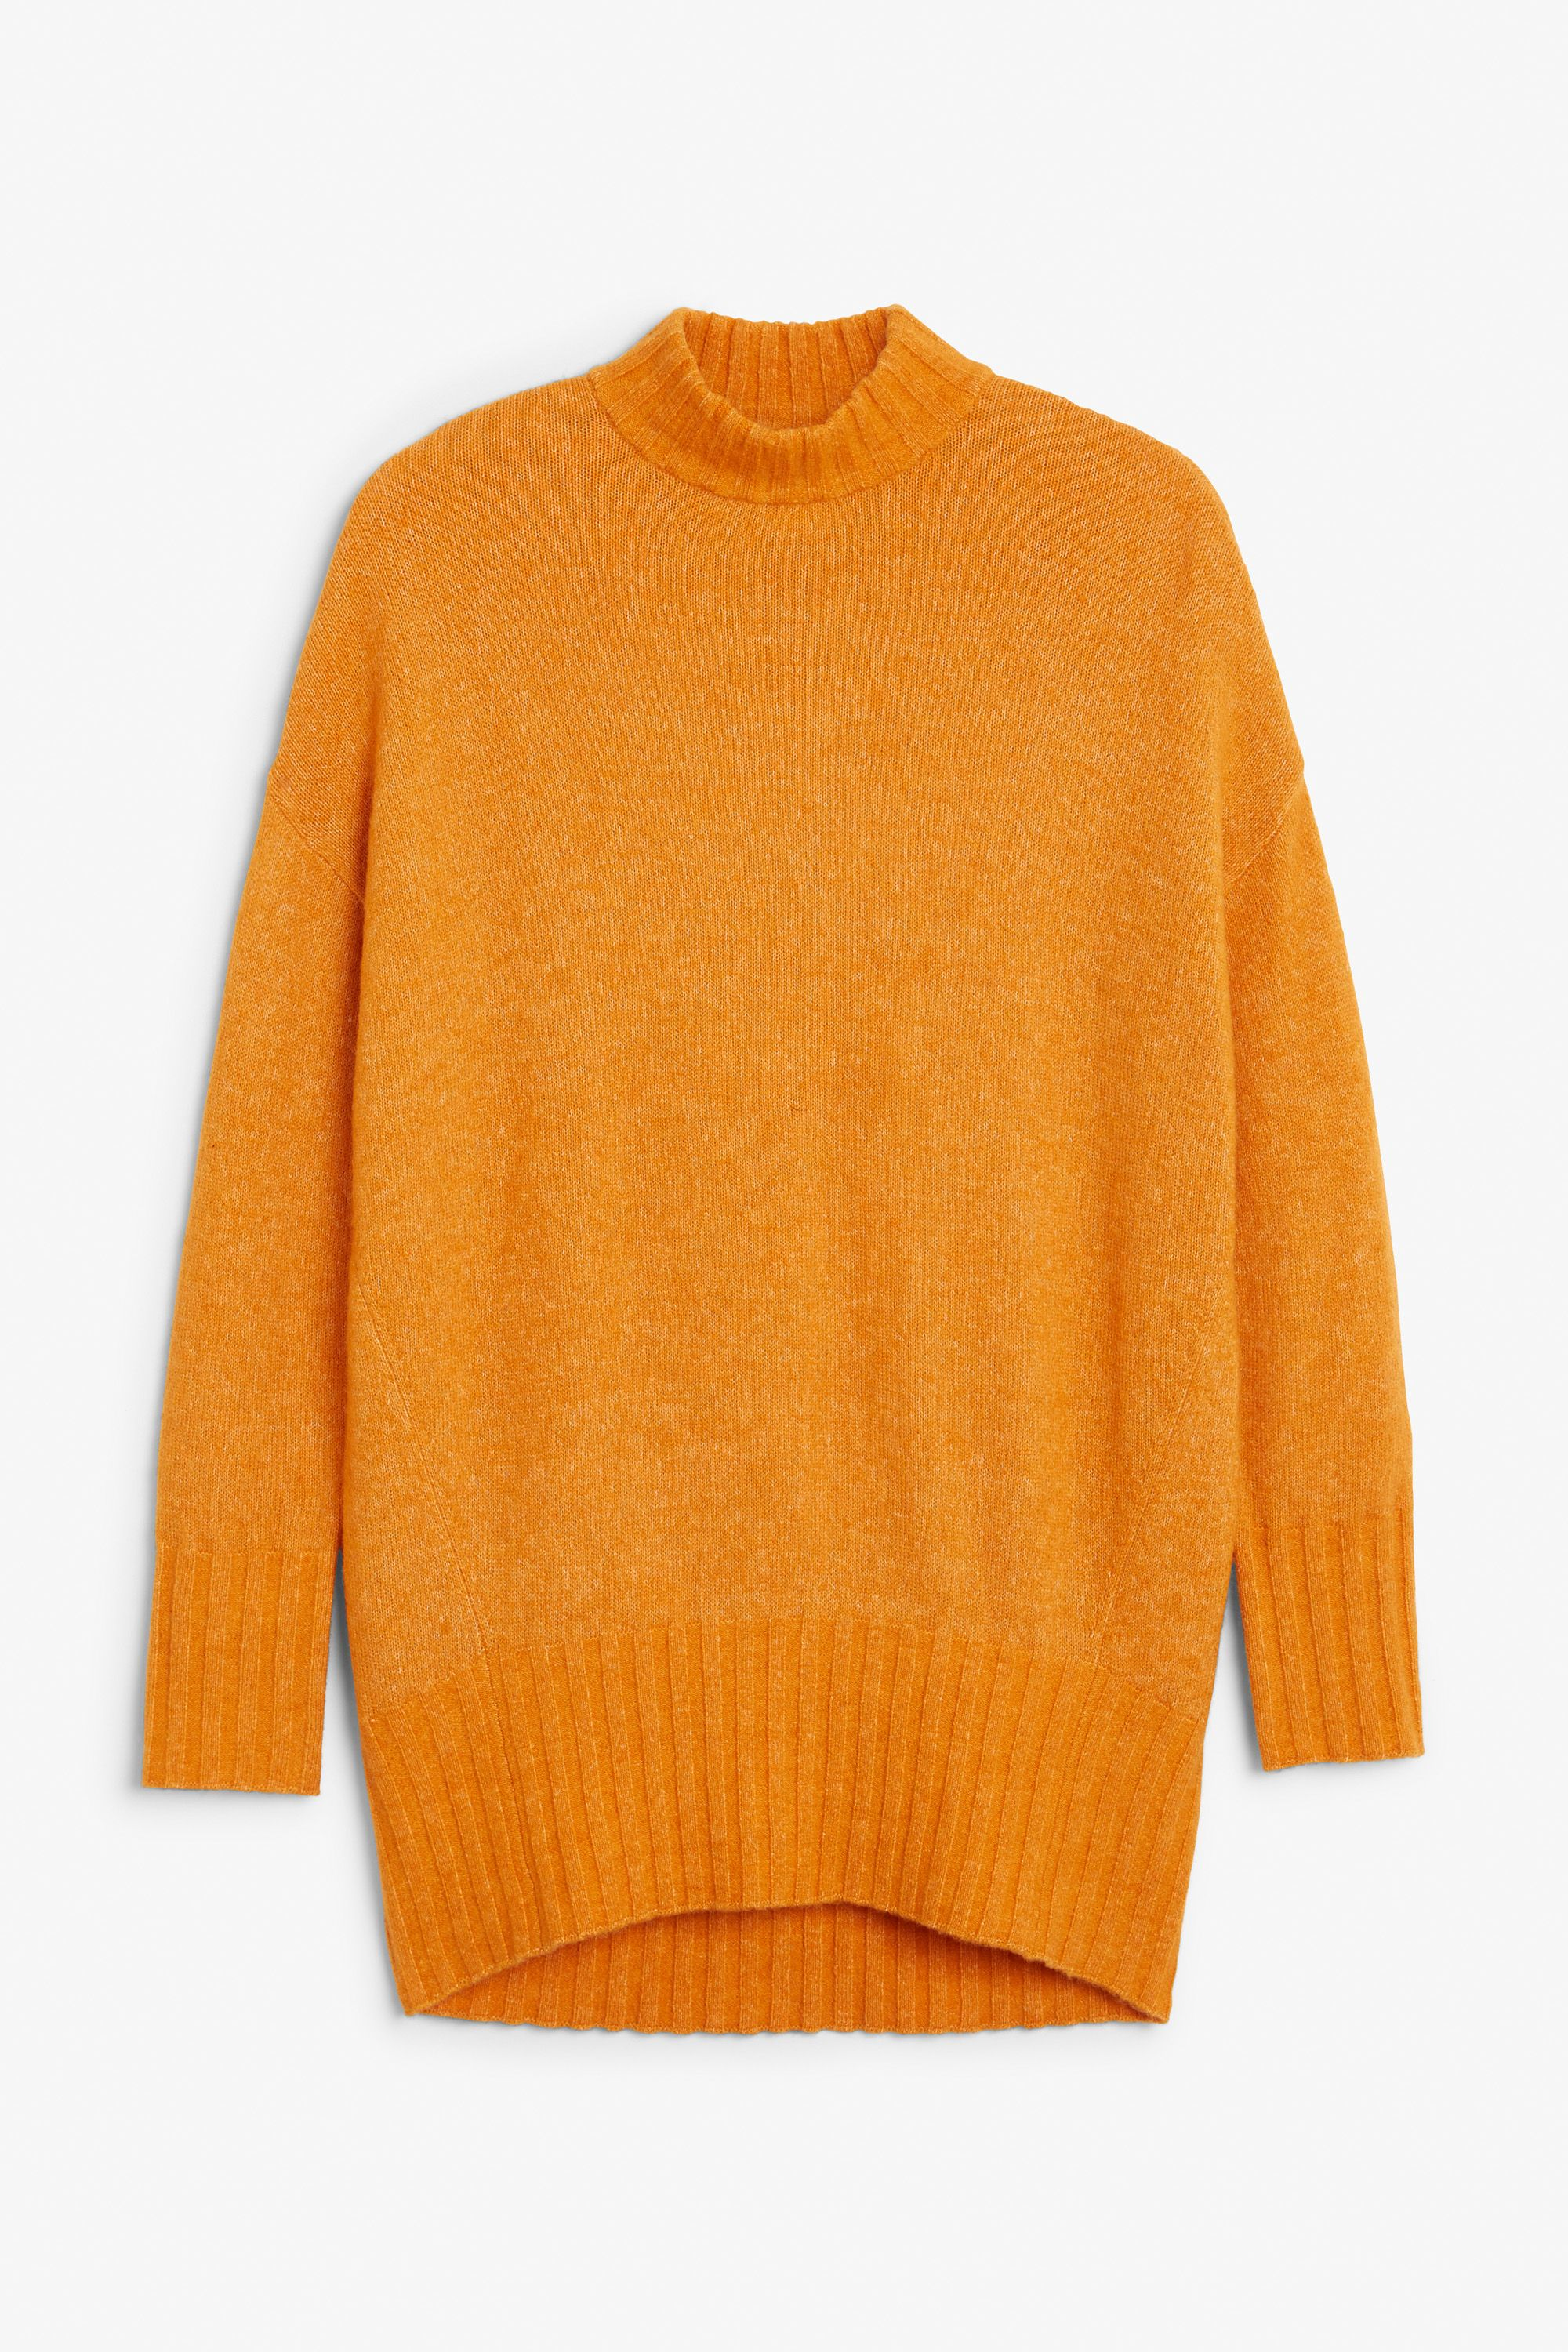 Monki Image 1 of Cosy knitted sweater in Yellow Reddish Dark ...